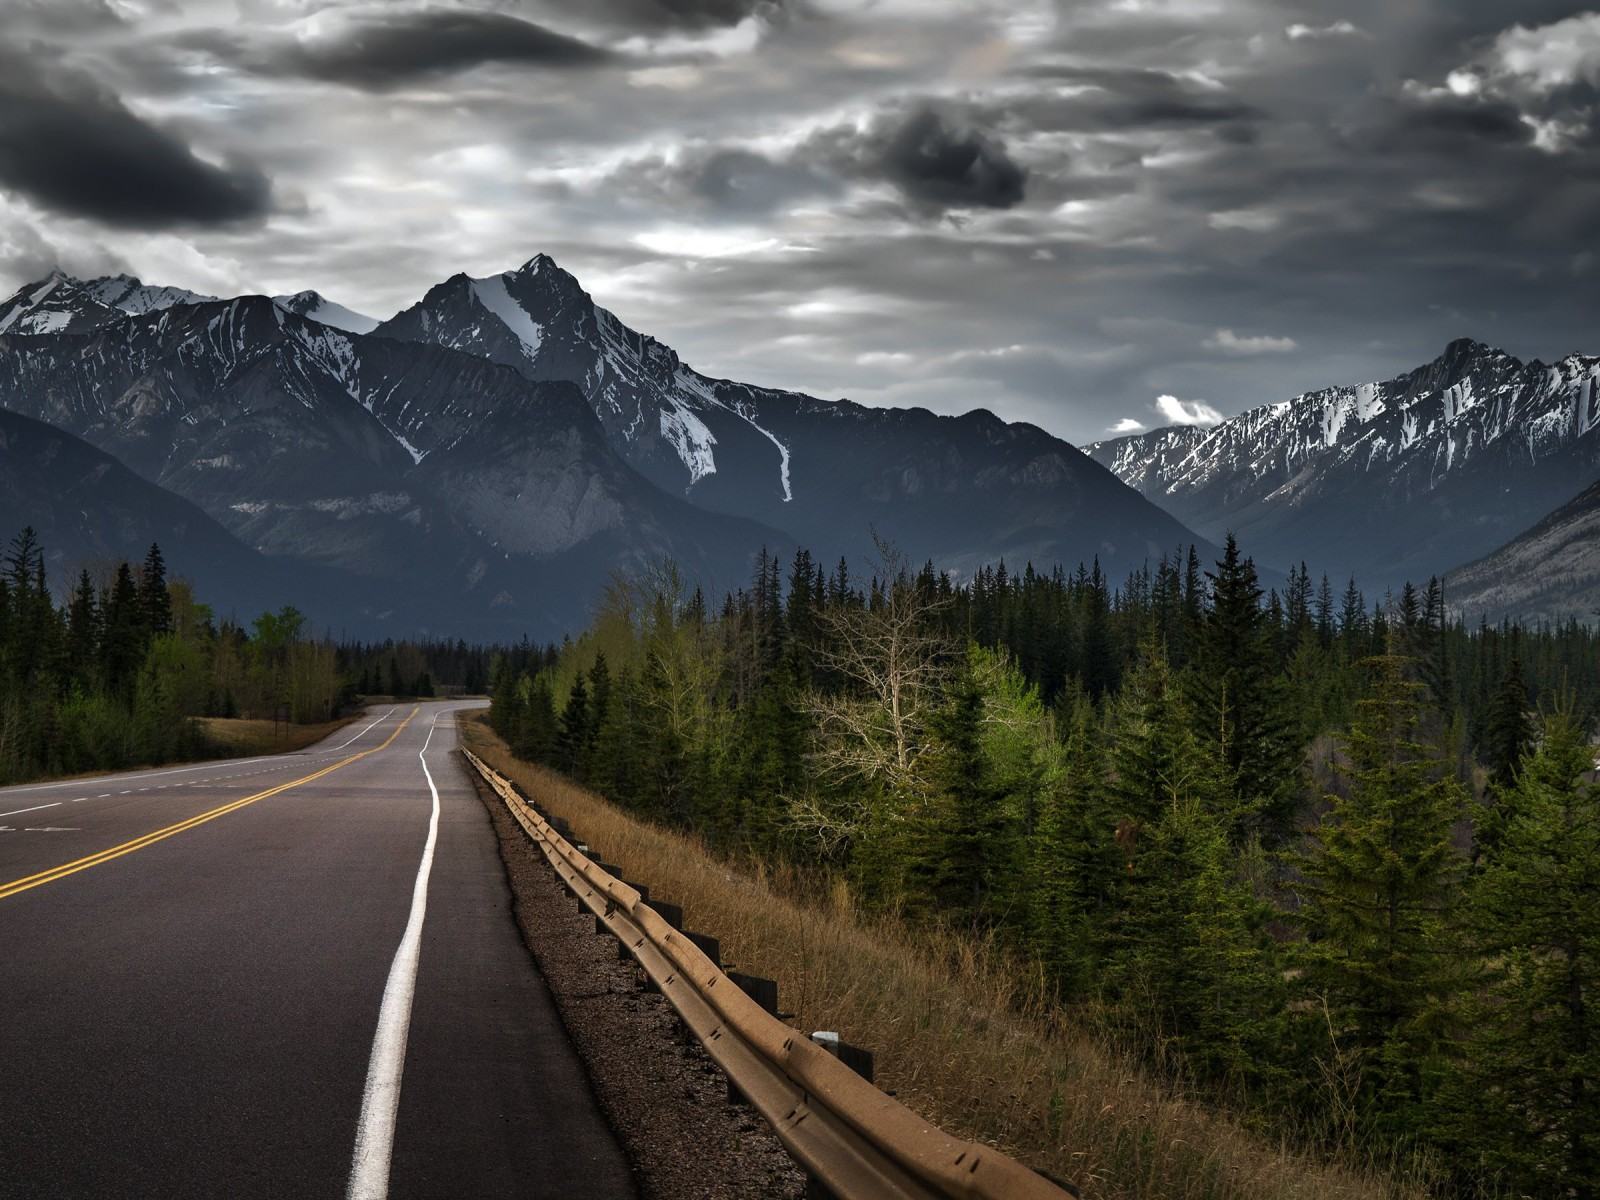 Road trip on a stormy day, Canada Wallpaper for Desktop 1600x1200